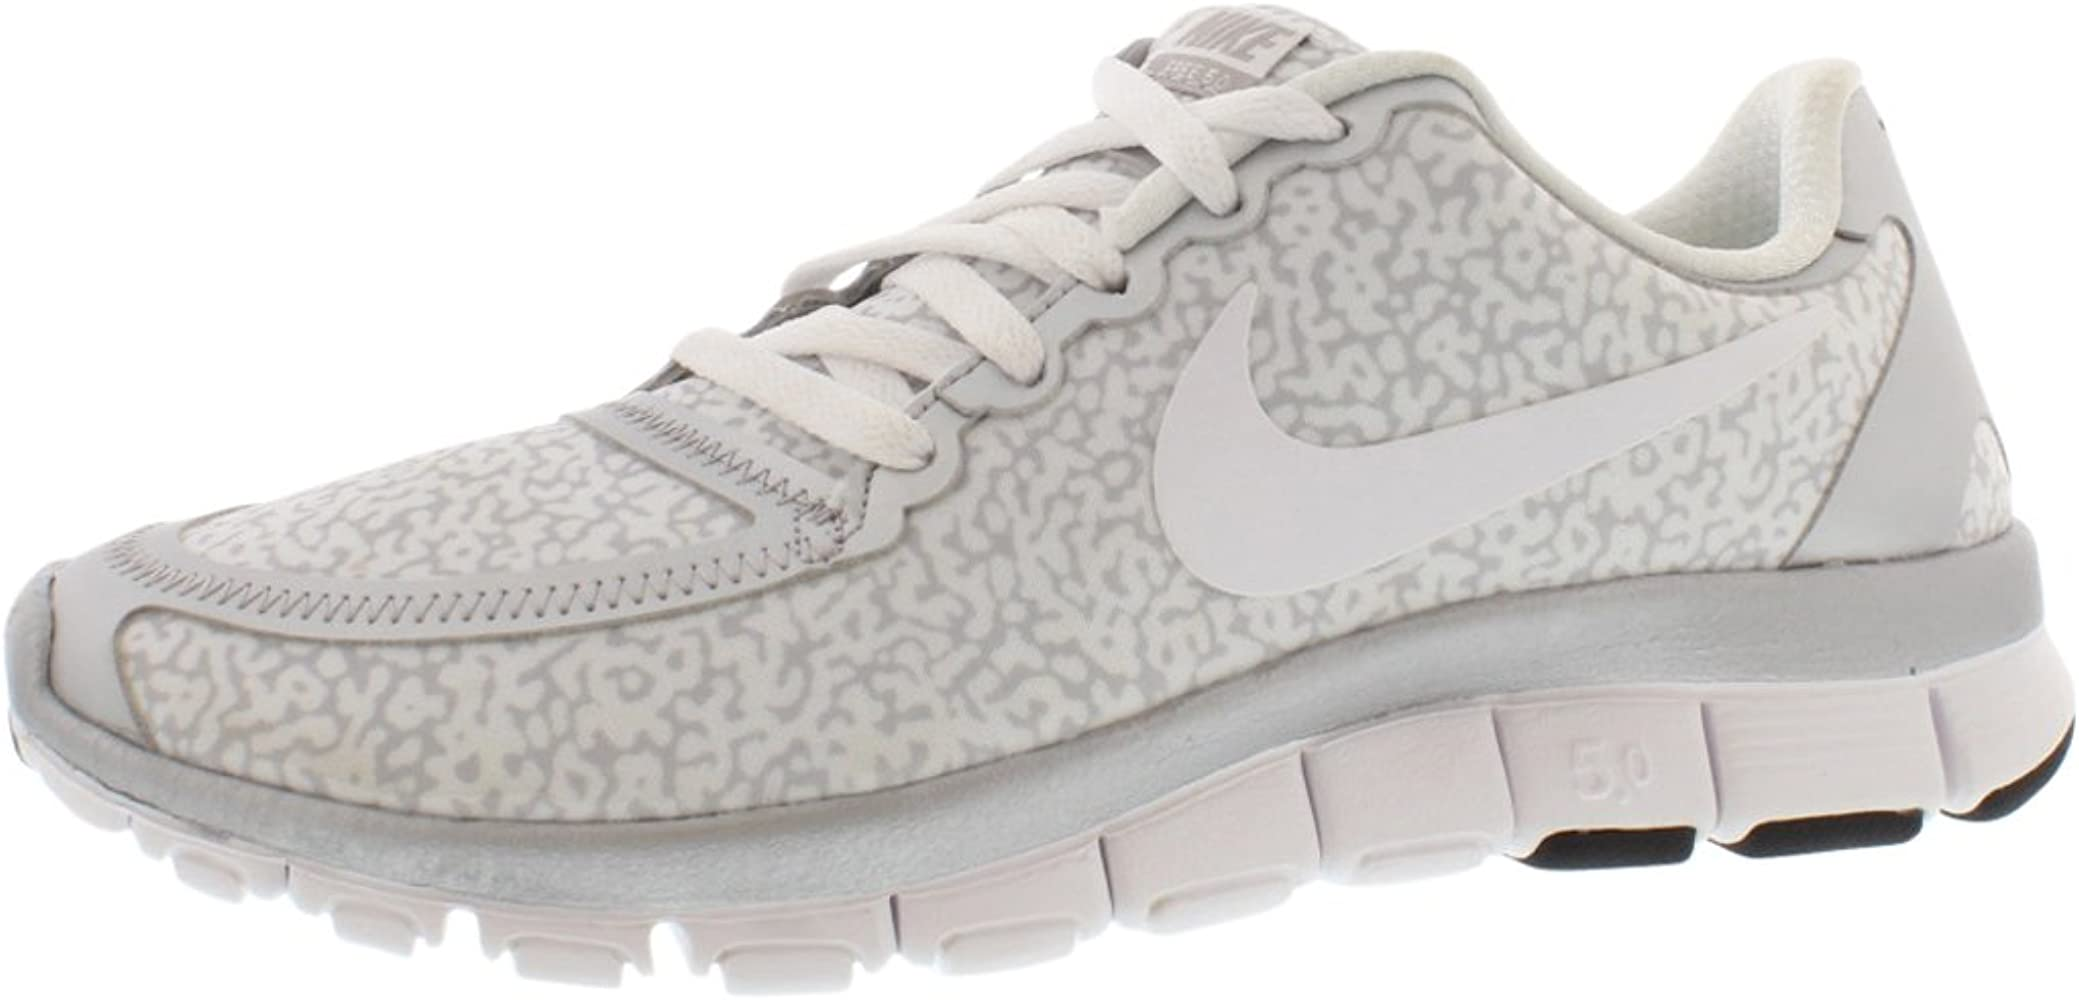 quality design 0ba87 5cd4a Amazon.com | Nike Free 5.0 v4 White/Silver Running Shoes ...